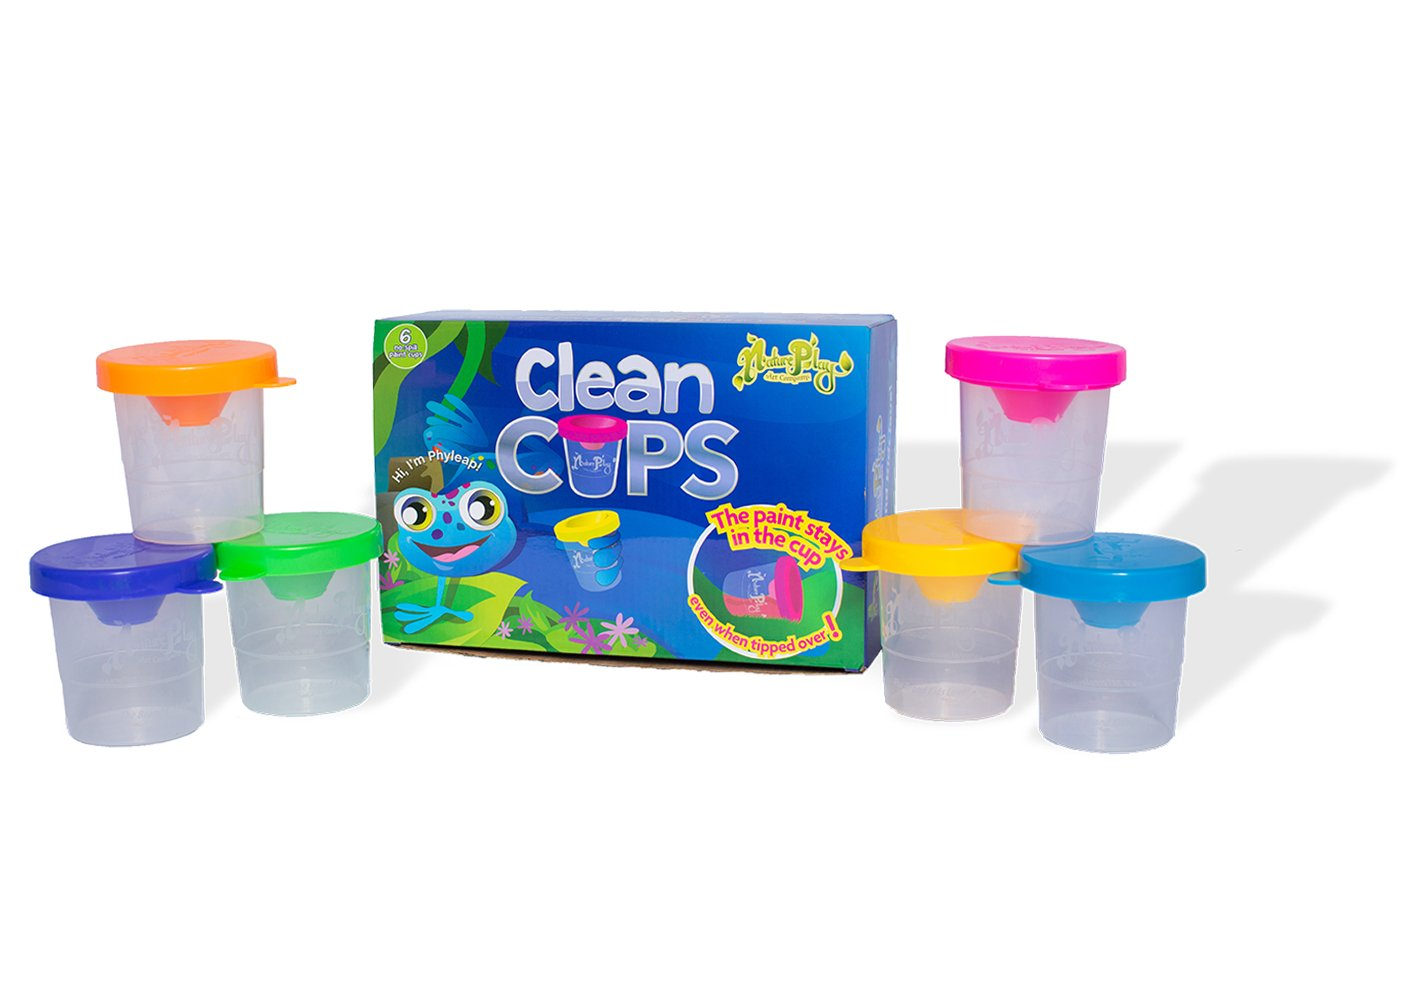 NaturePlay Clean Cups - No Spill Paint Cups With Lids (6 Pack, Neon Colors)